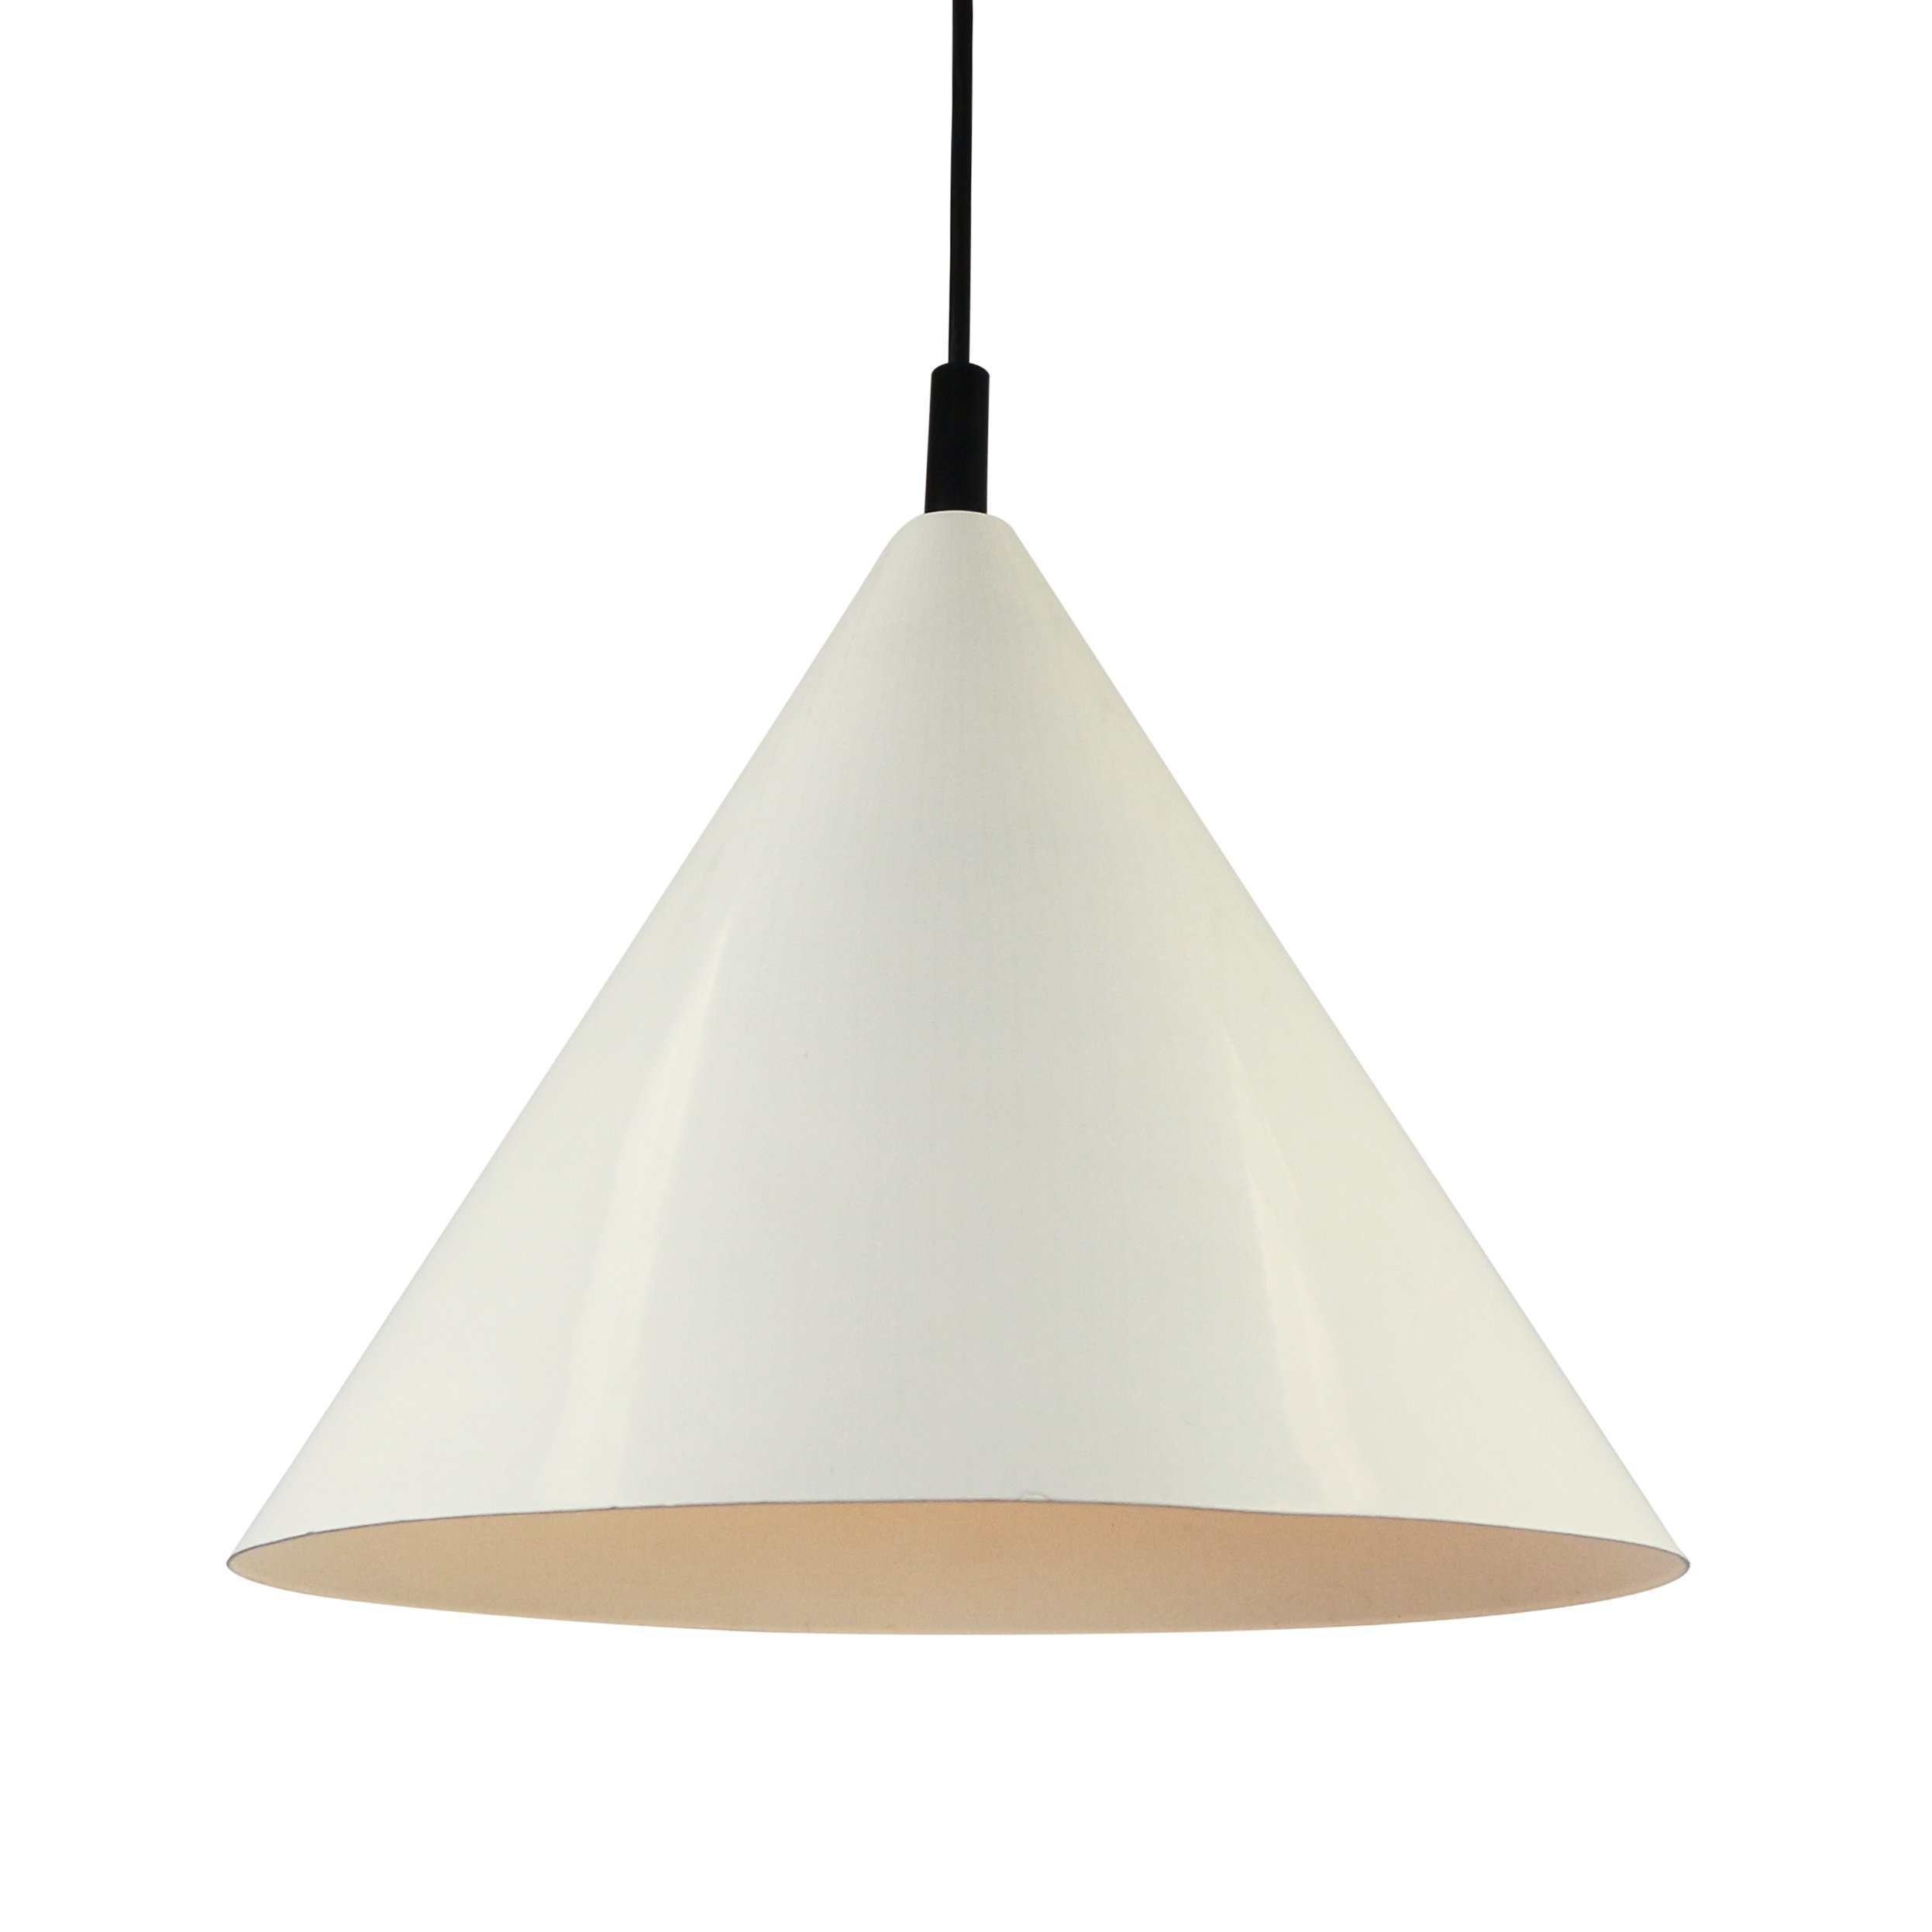 Cone Shaped Pendant Light White Philips Nps 86 Cone Pendant Light From The Sixties